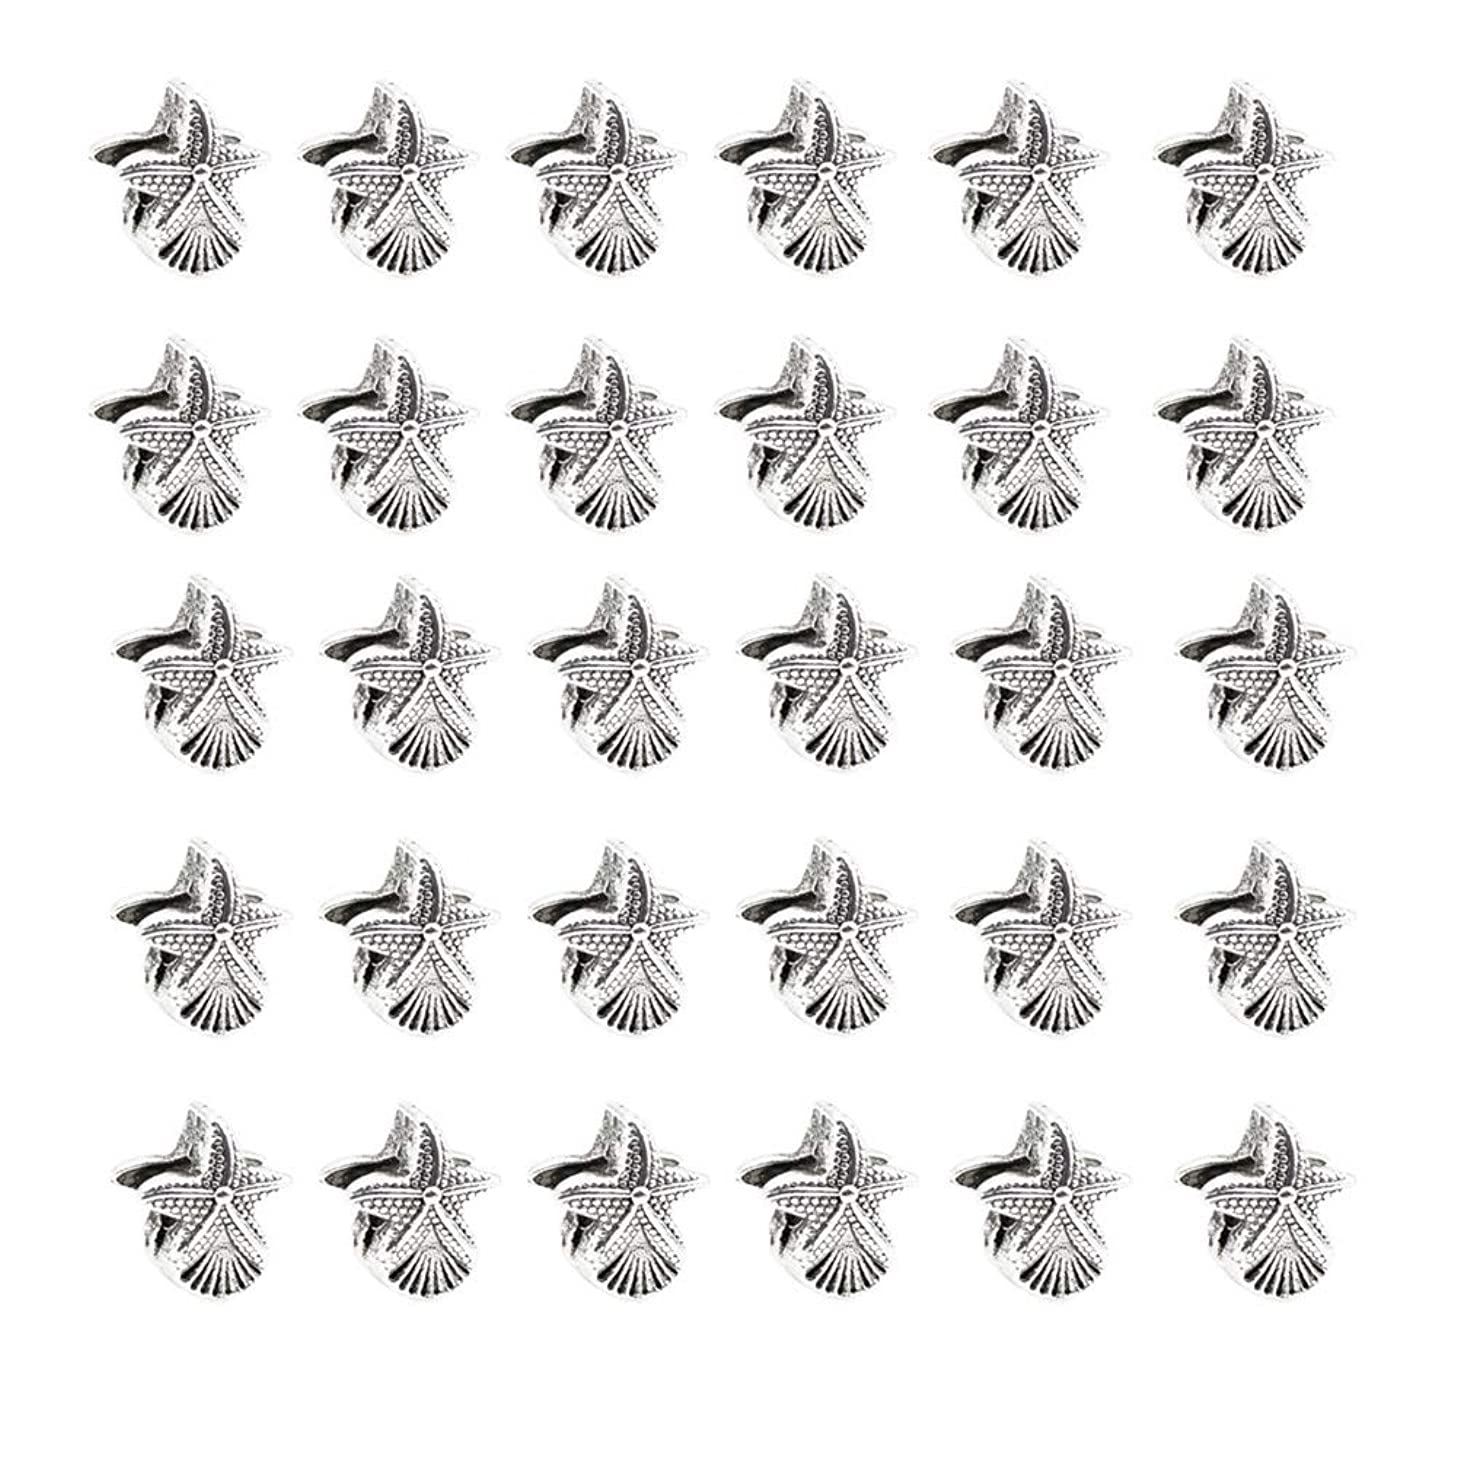 Mystart 30 Pieces Silver-Plated Shell Starfish Large Hole Beads Charms Hand Chain Jewelry Making Accessories